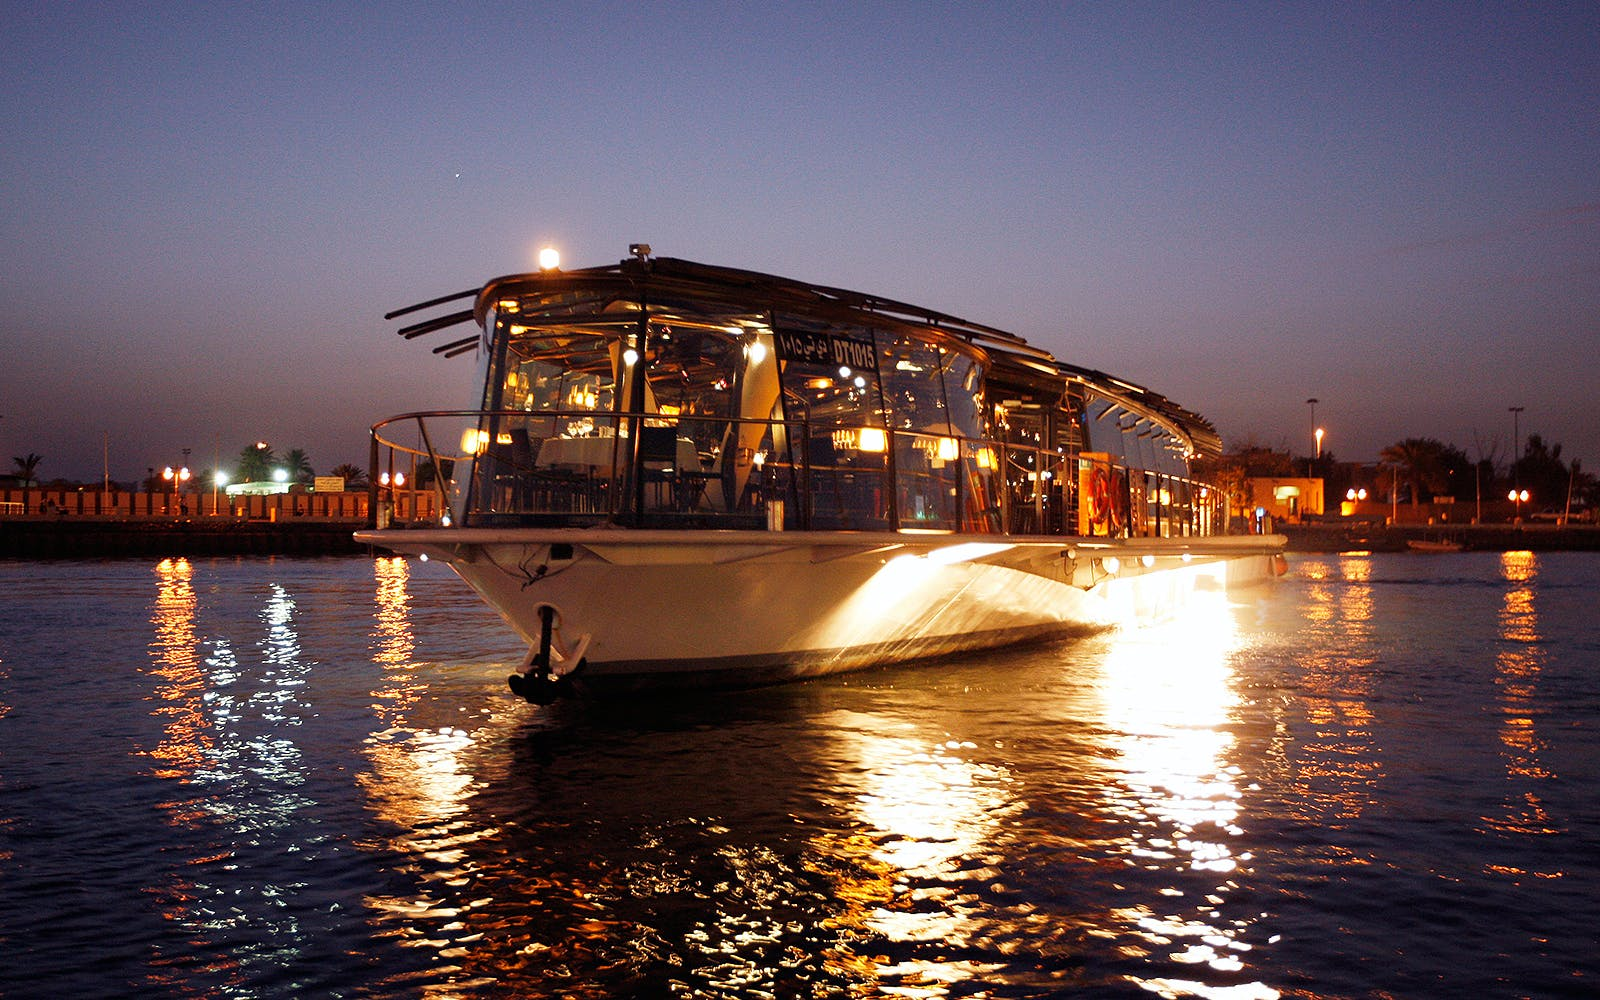 Bateaux Dinner Cruise with Free Drink